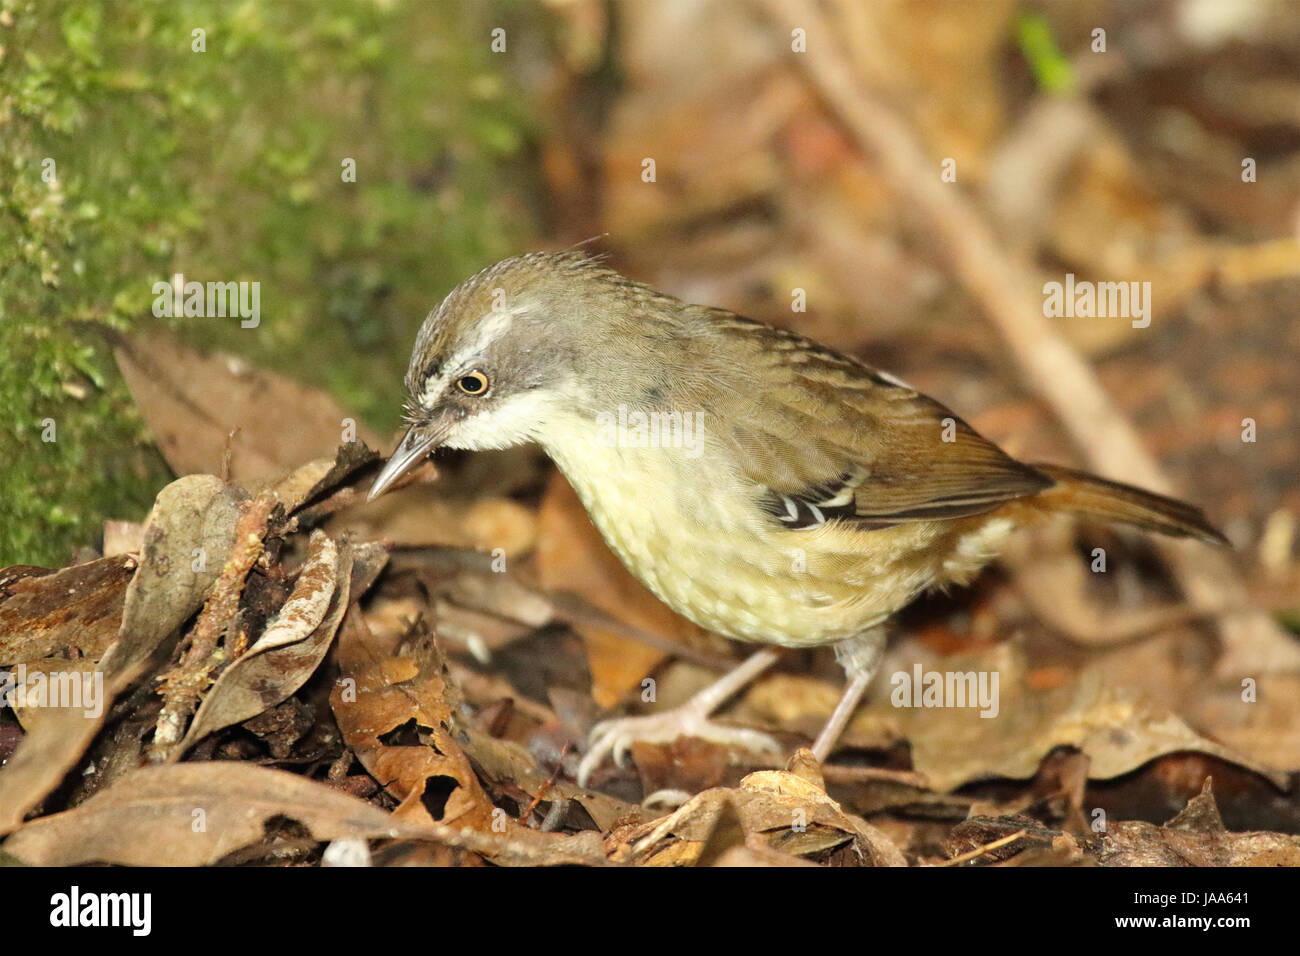 A White-browed Scrub Wren looking for food in an Australian forest. - Stock Image